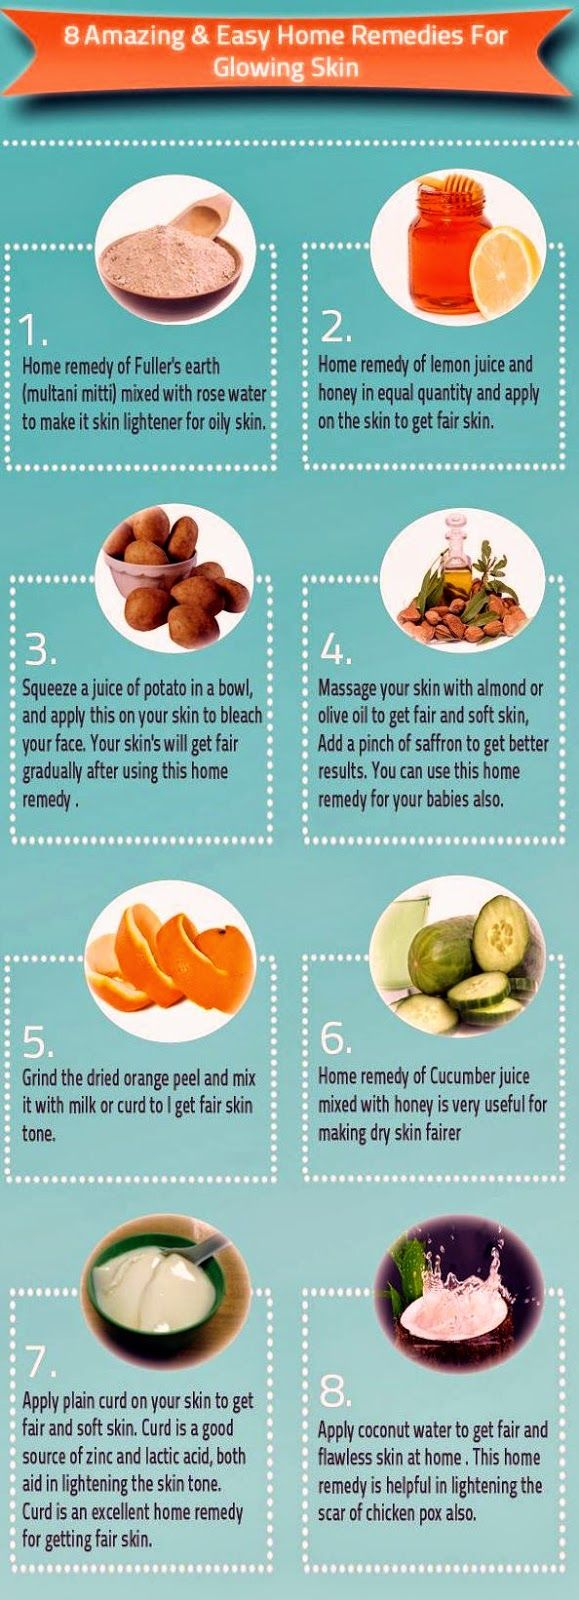 8 Amazing And Easy Home Remedies For Glowing Skin - Health Tips In Pics